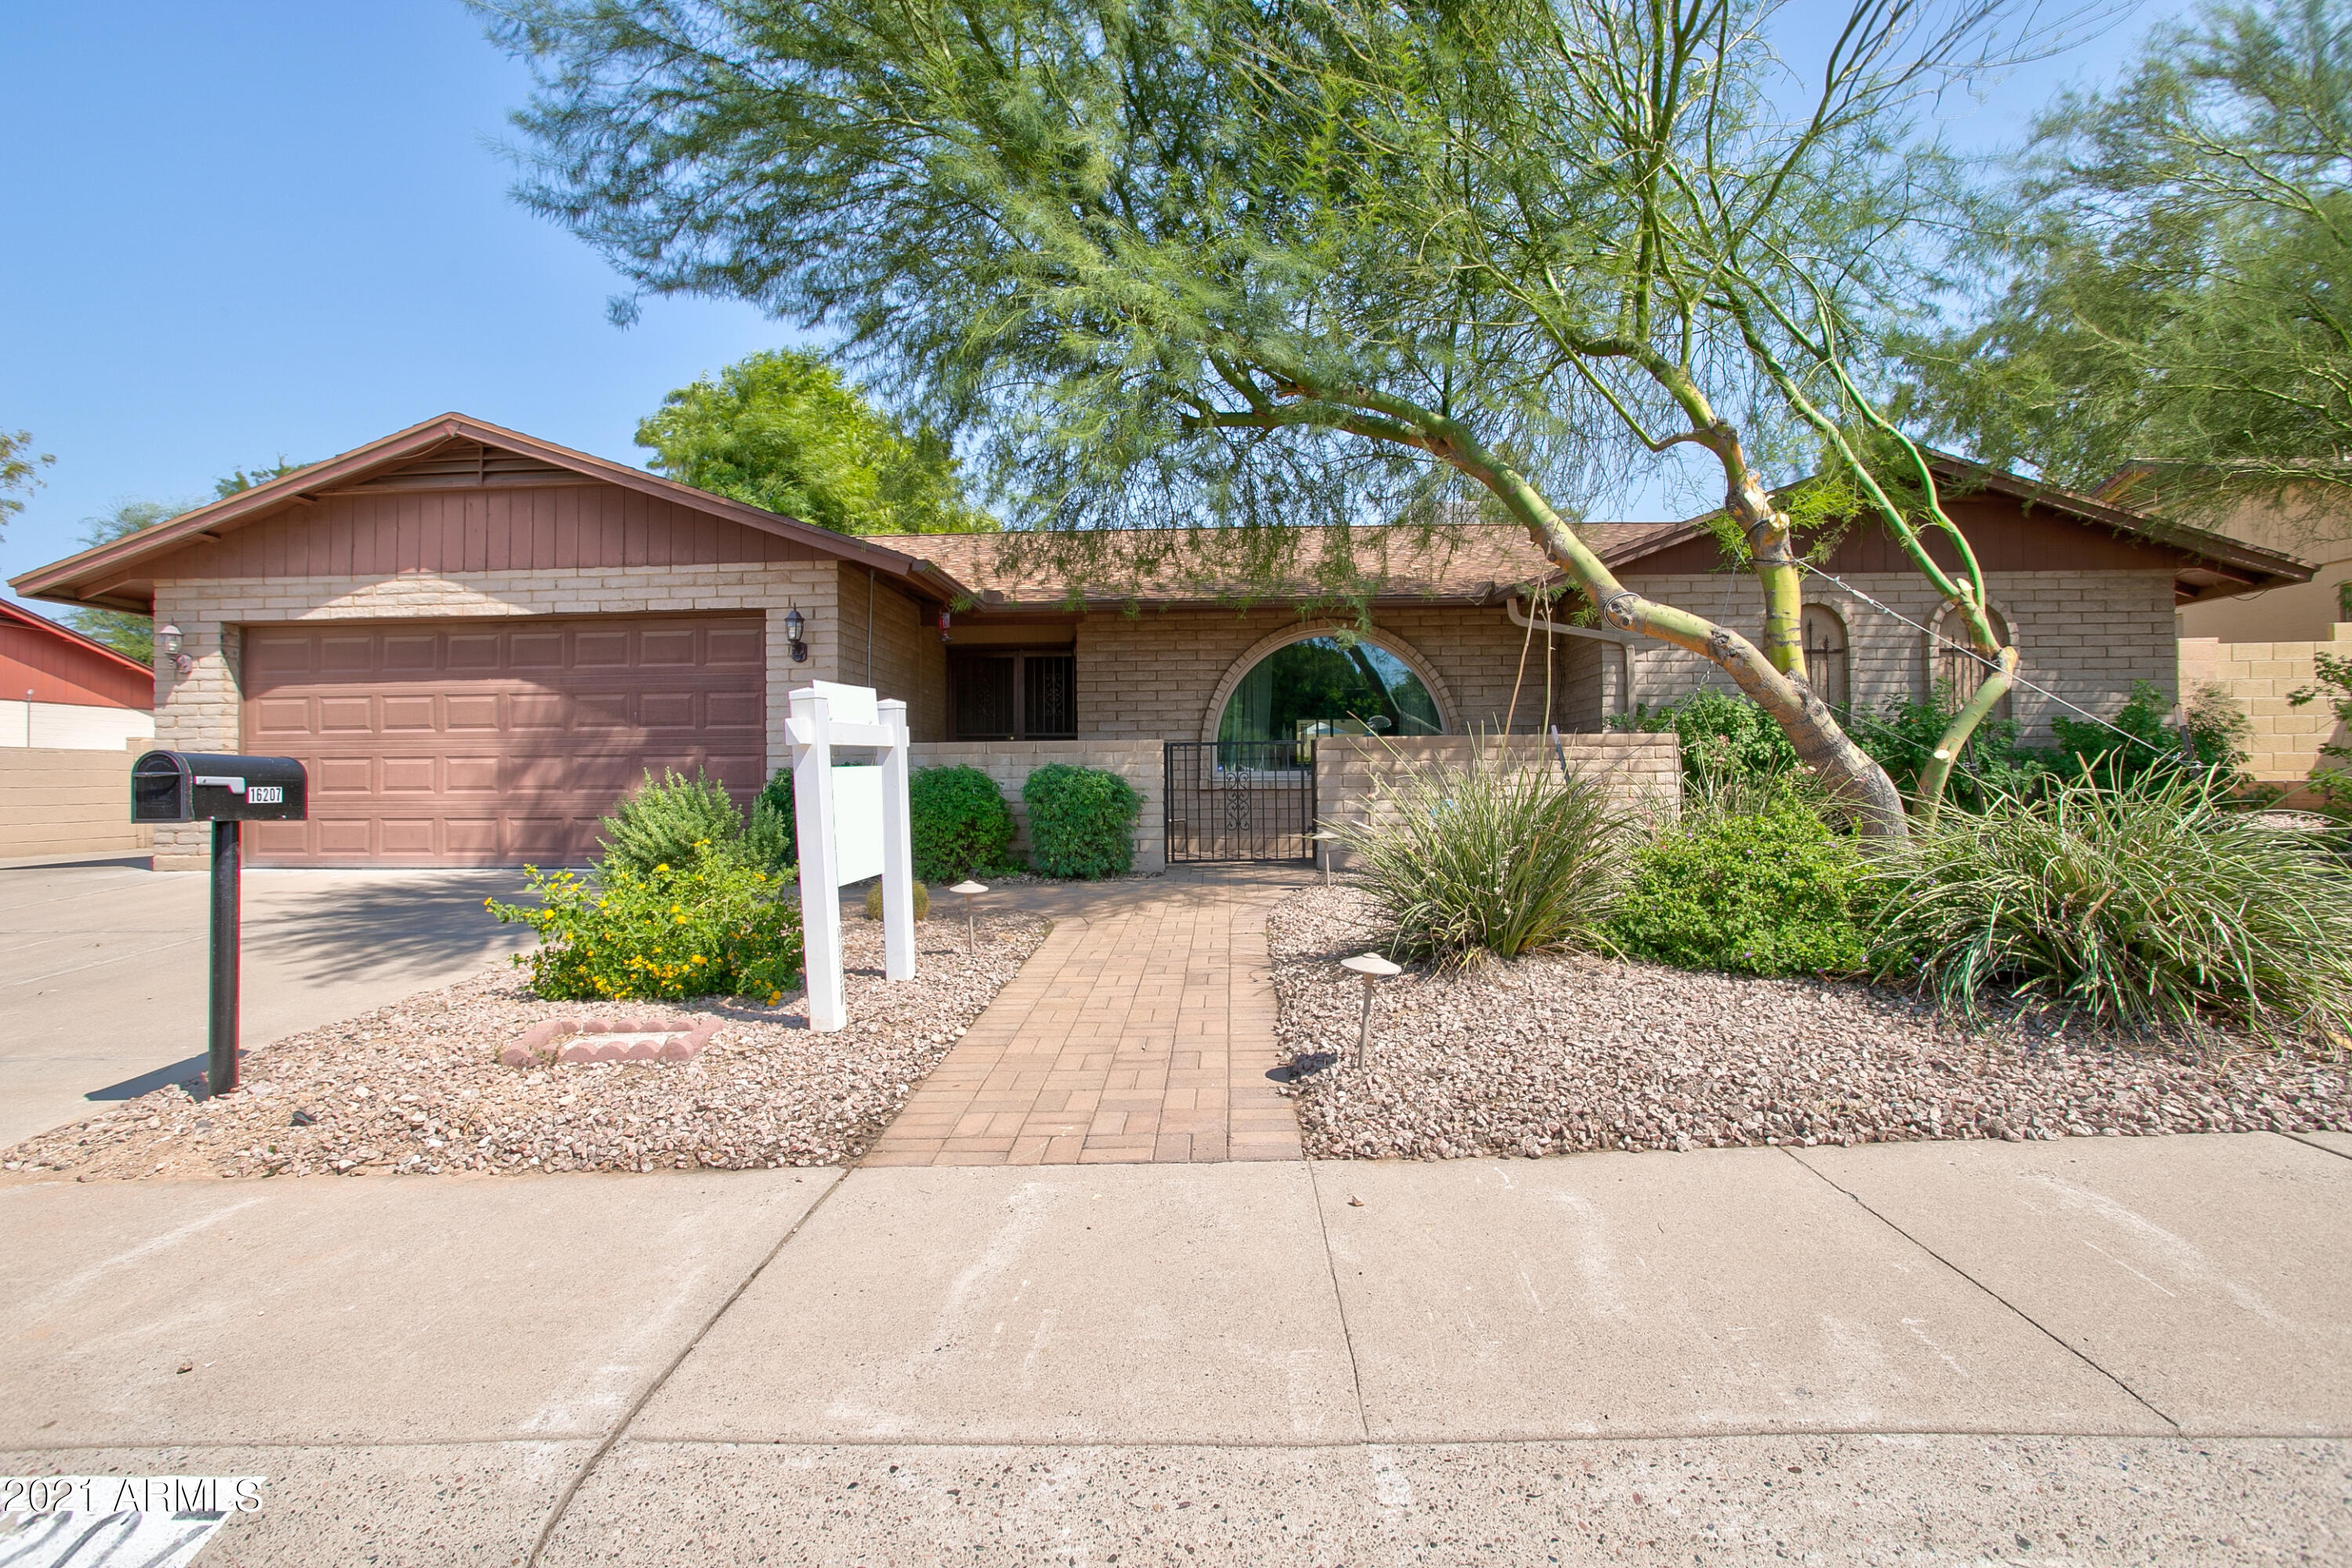 16207 11TH Place, Phoenix, Arizona 85022, 4 Bedrooms Bedrooms, ,2 BathroomsBathrooms,Residential,For Sale,11TH,6293937